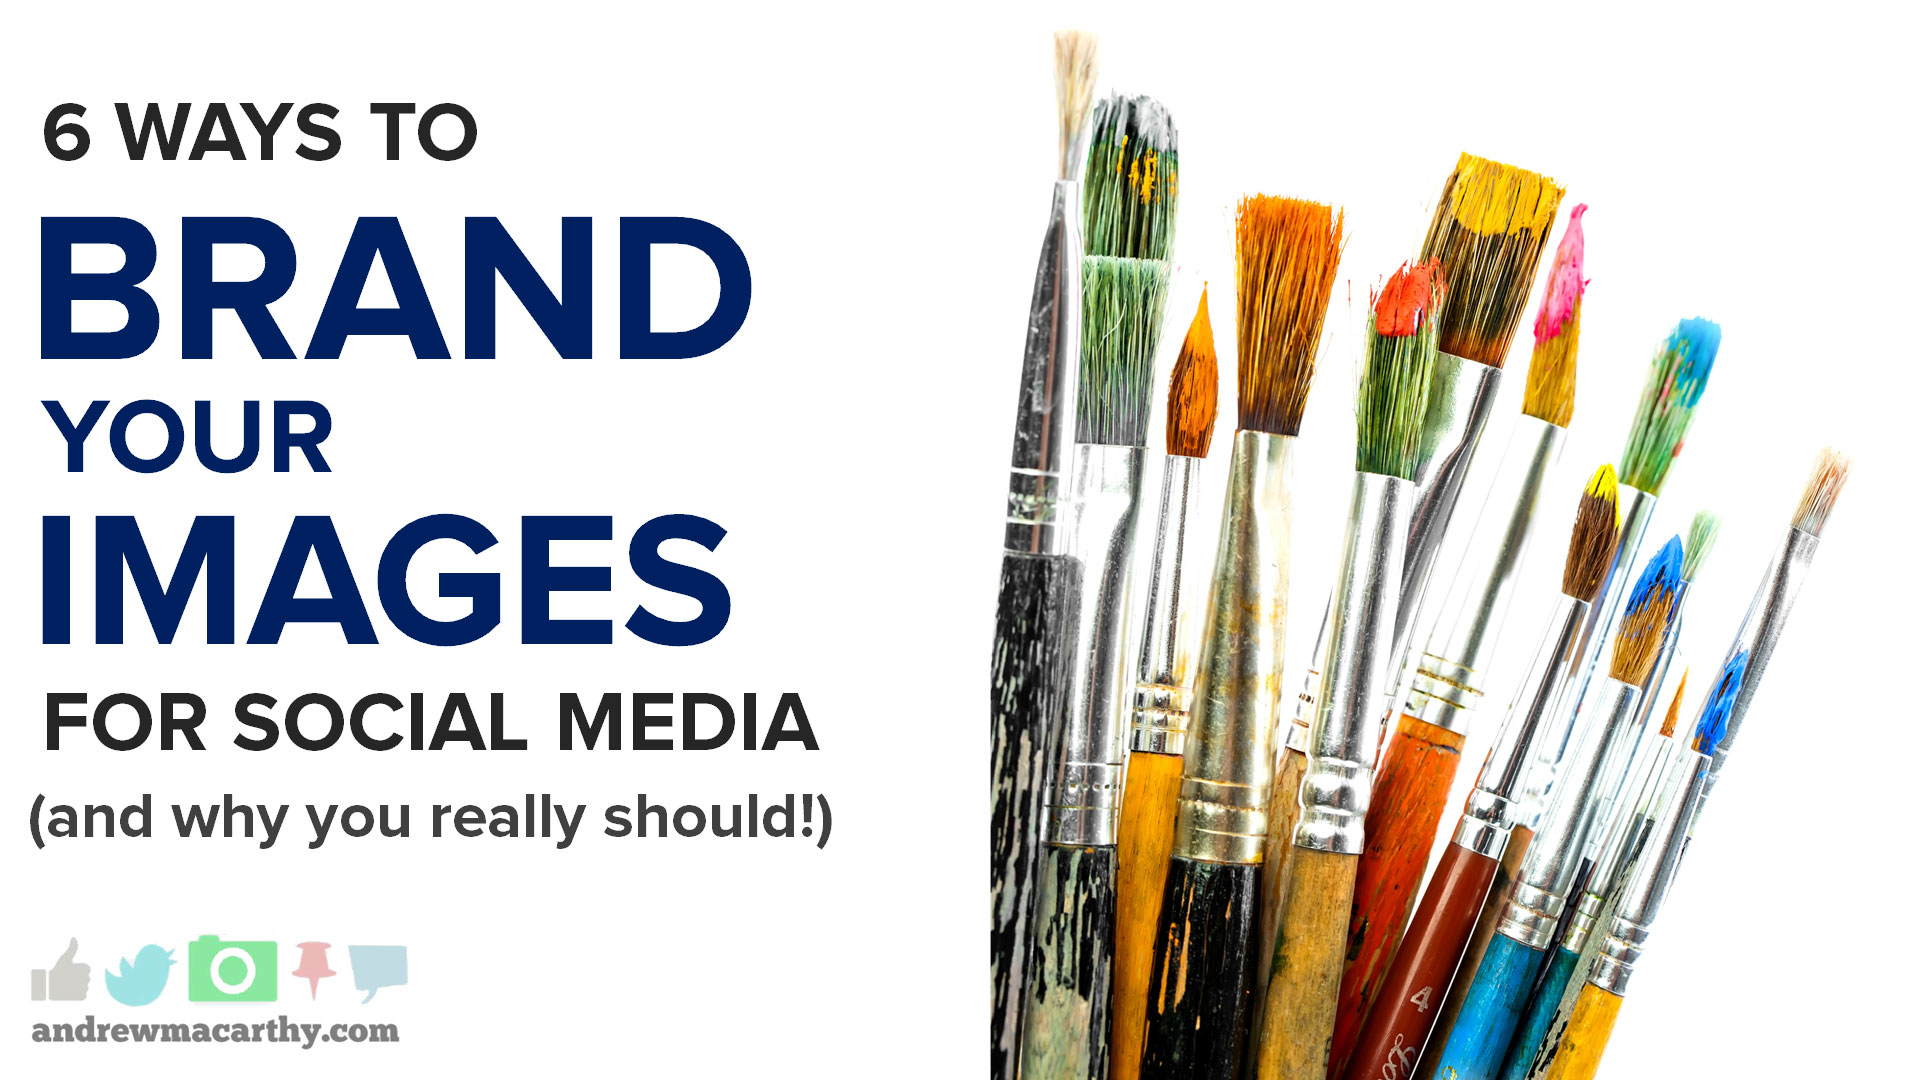 6 Ways to Brand Your Images For Social Media (And Why You Should Start Today)